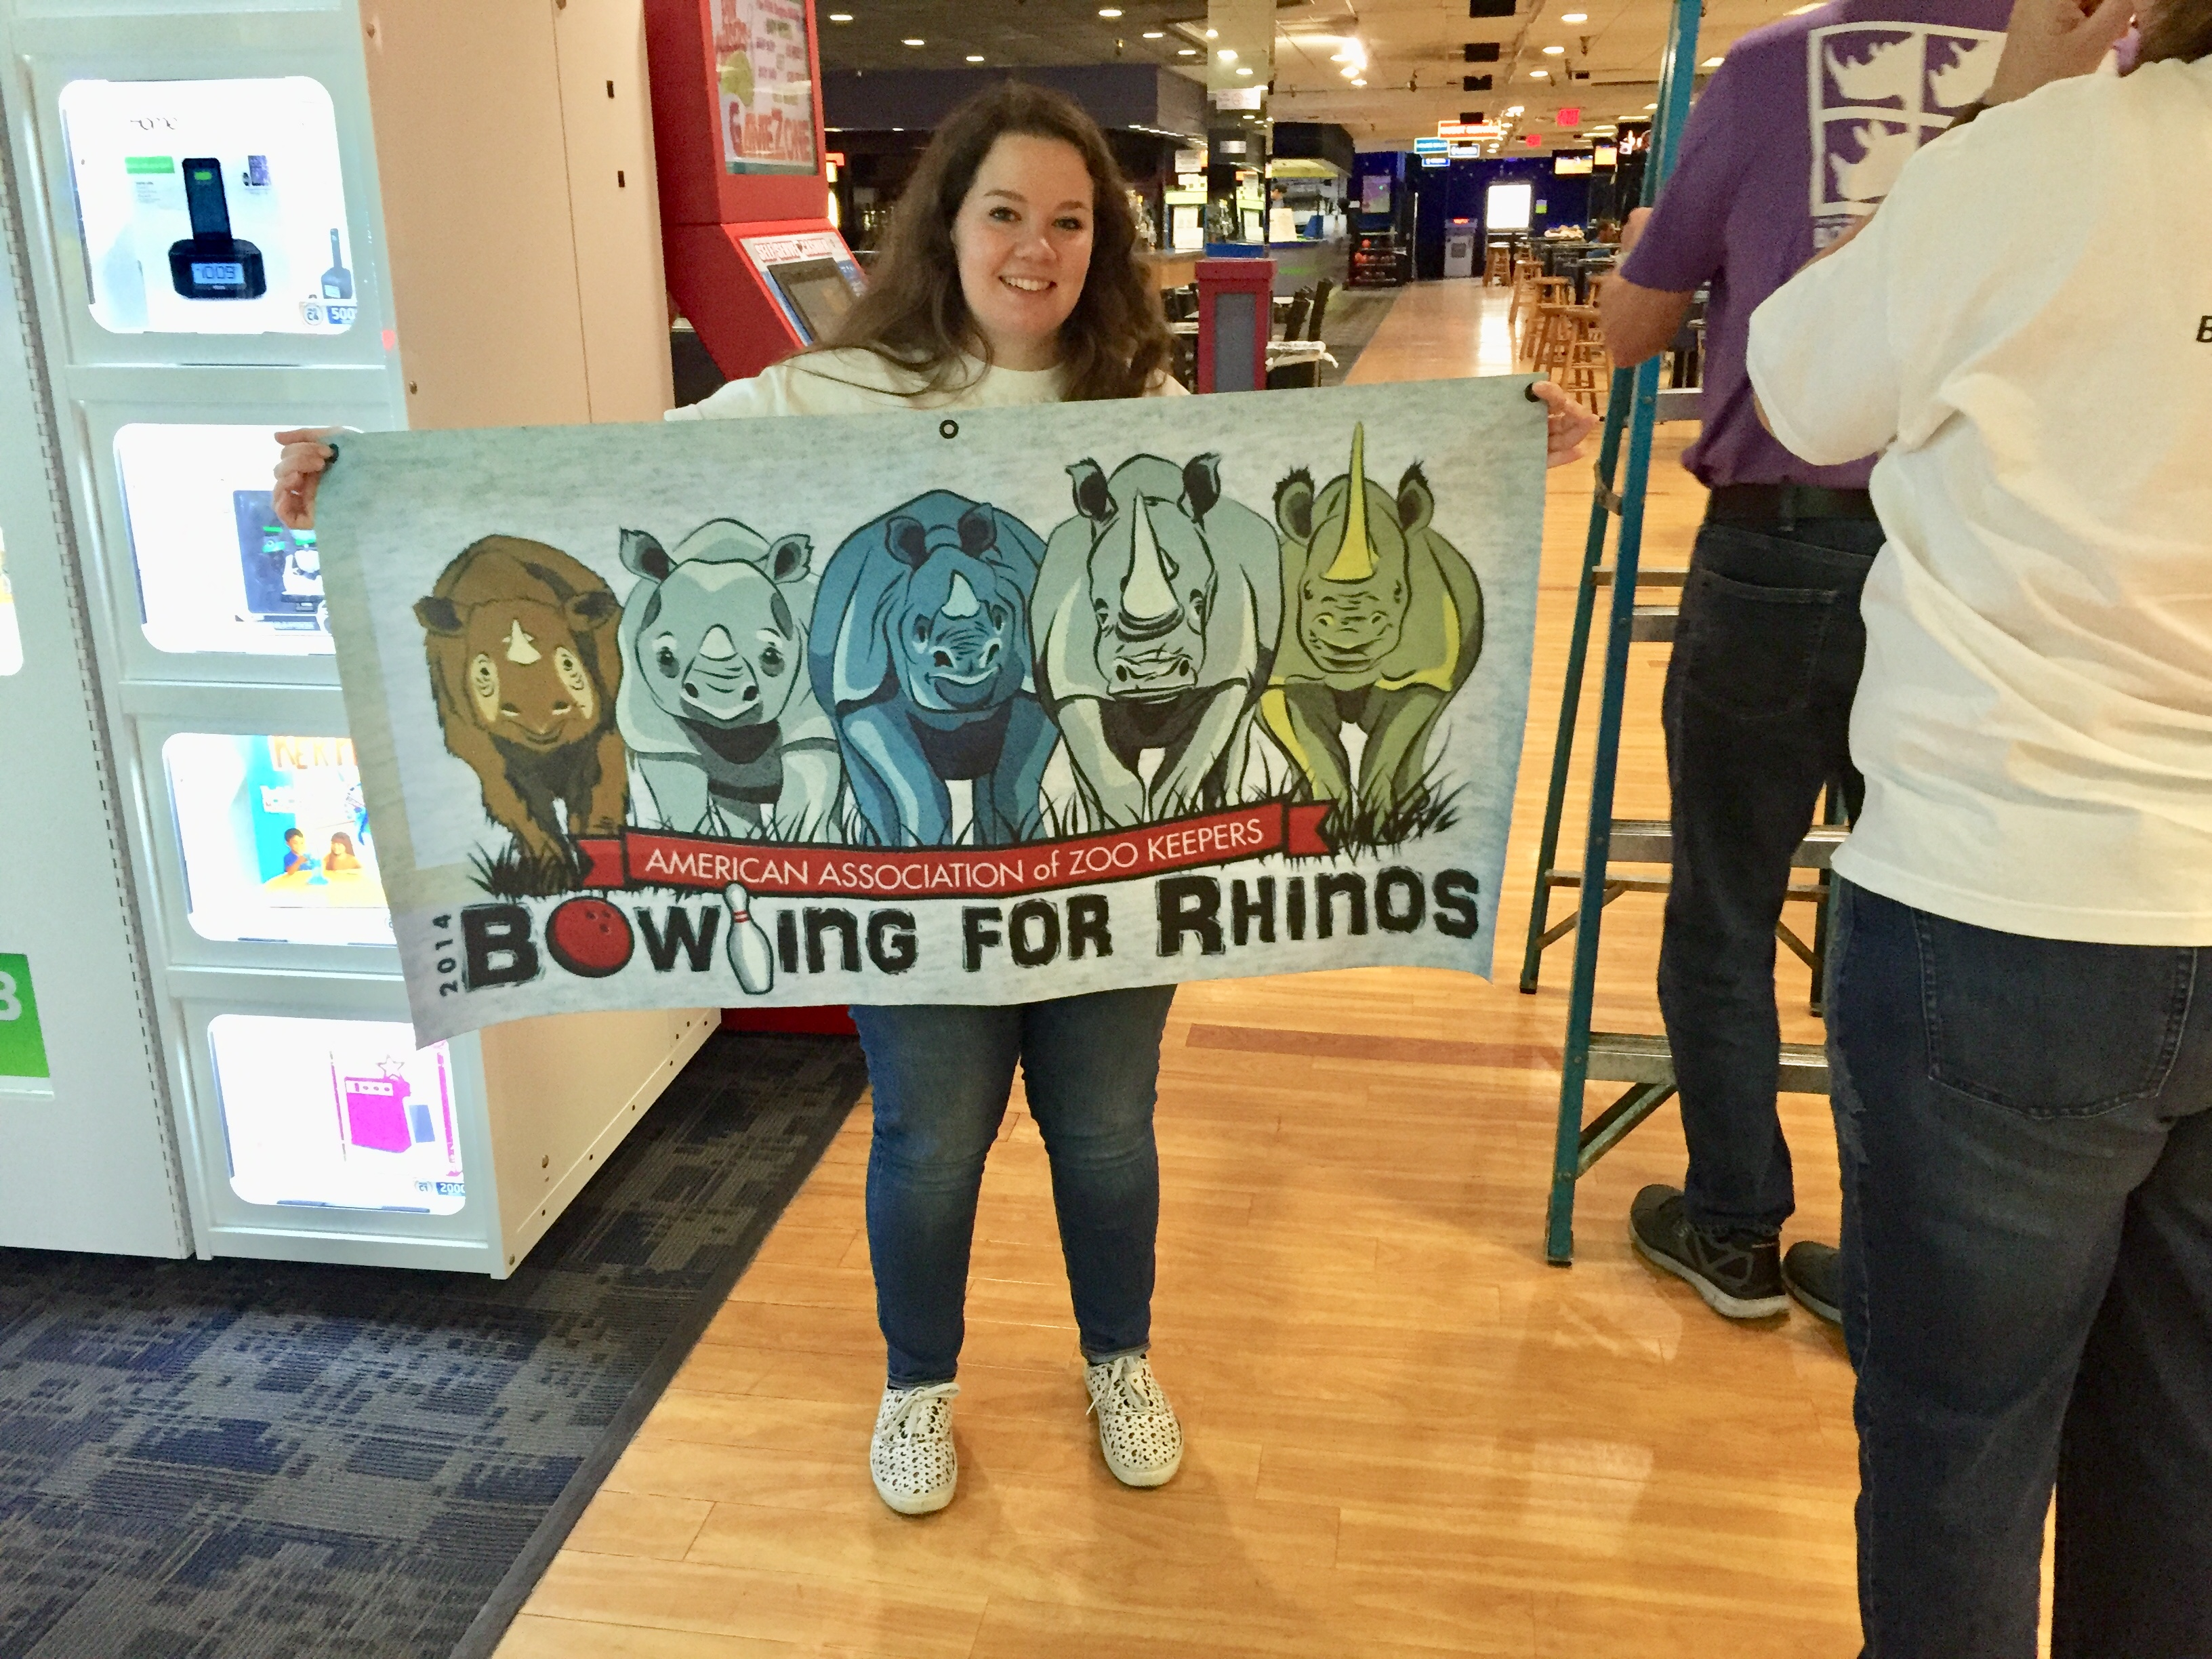 Tampa Bay AAZK, Bowling for rhinos, rhino conservation